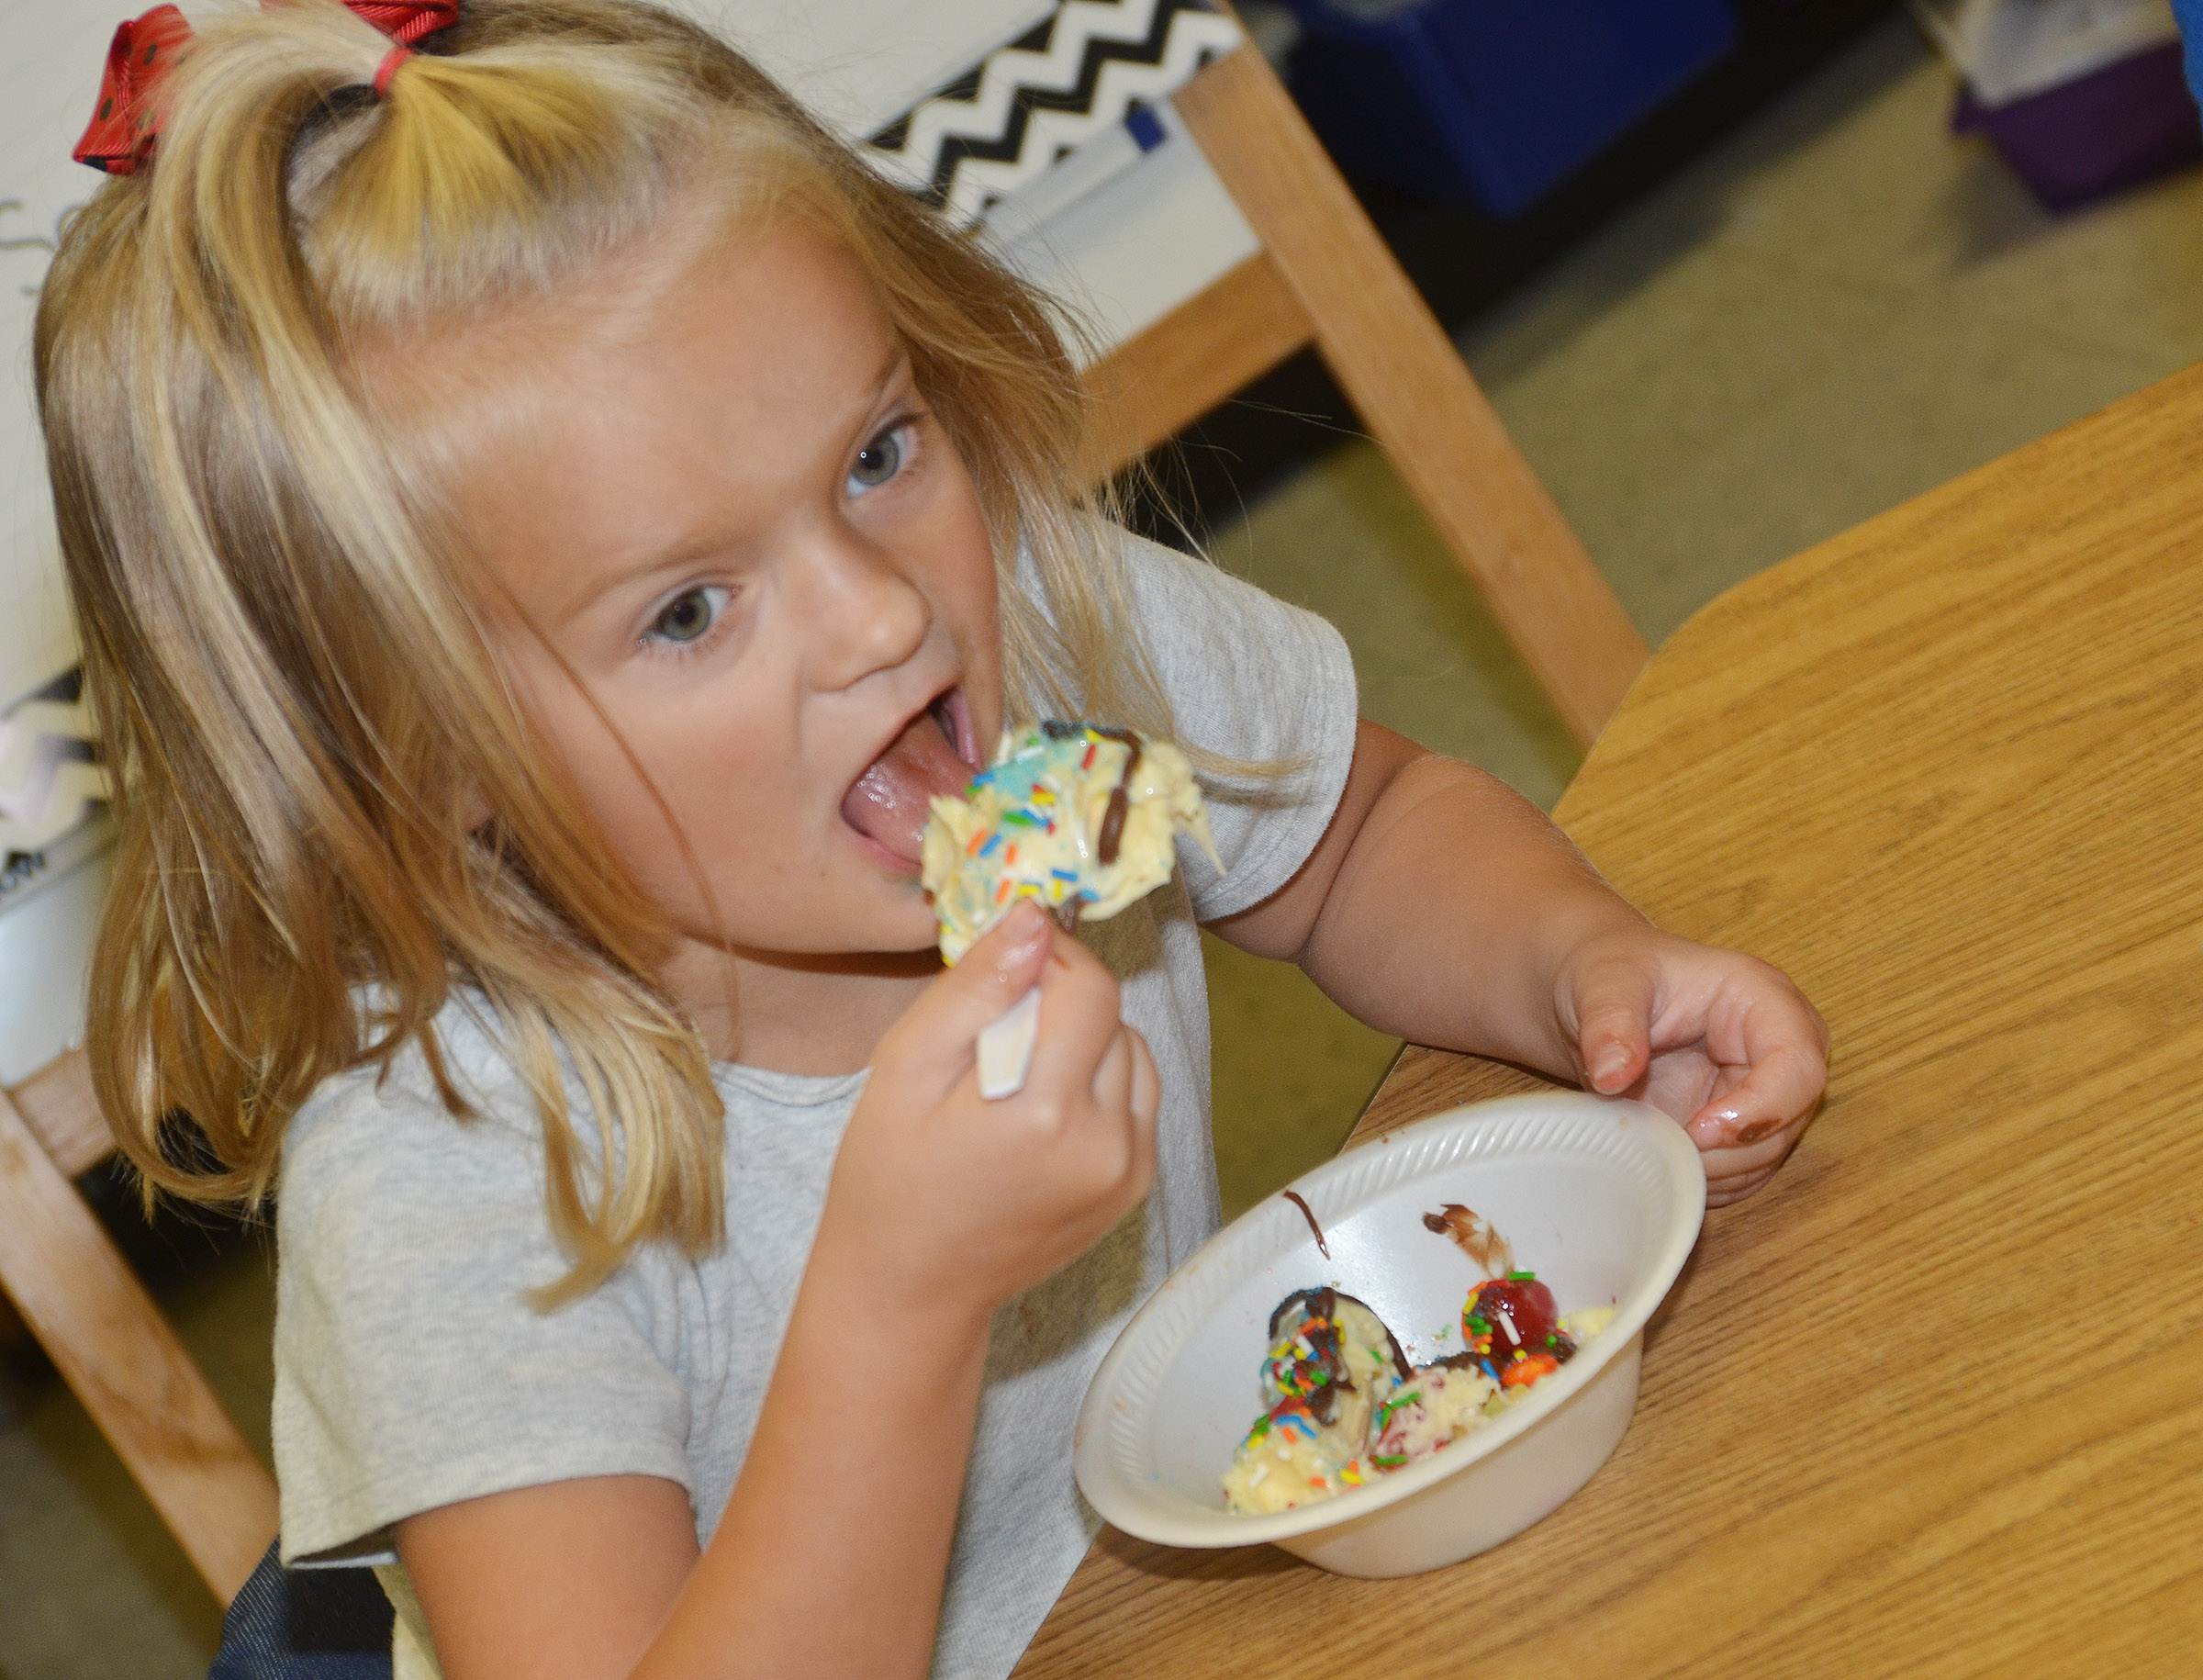 CES first-grader Miley Orberson enjoys her ice cream sundae.